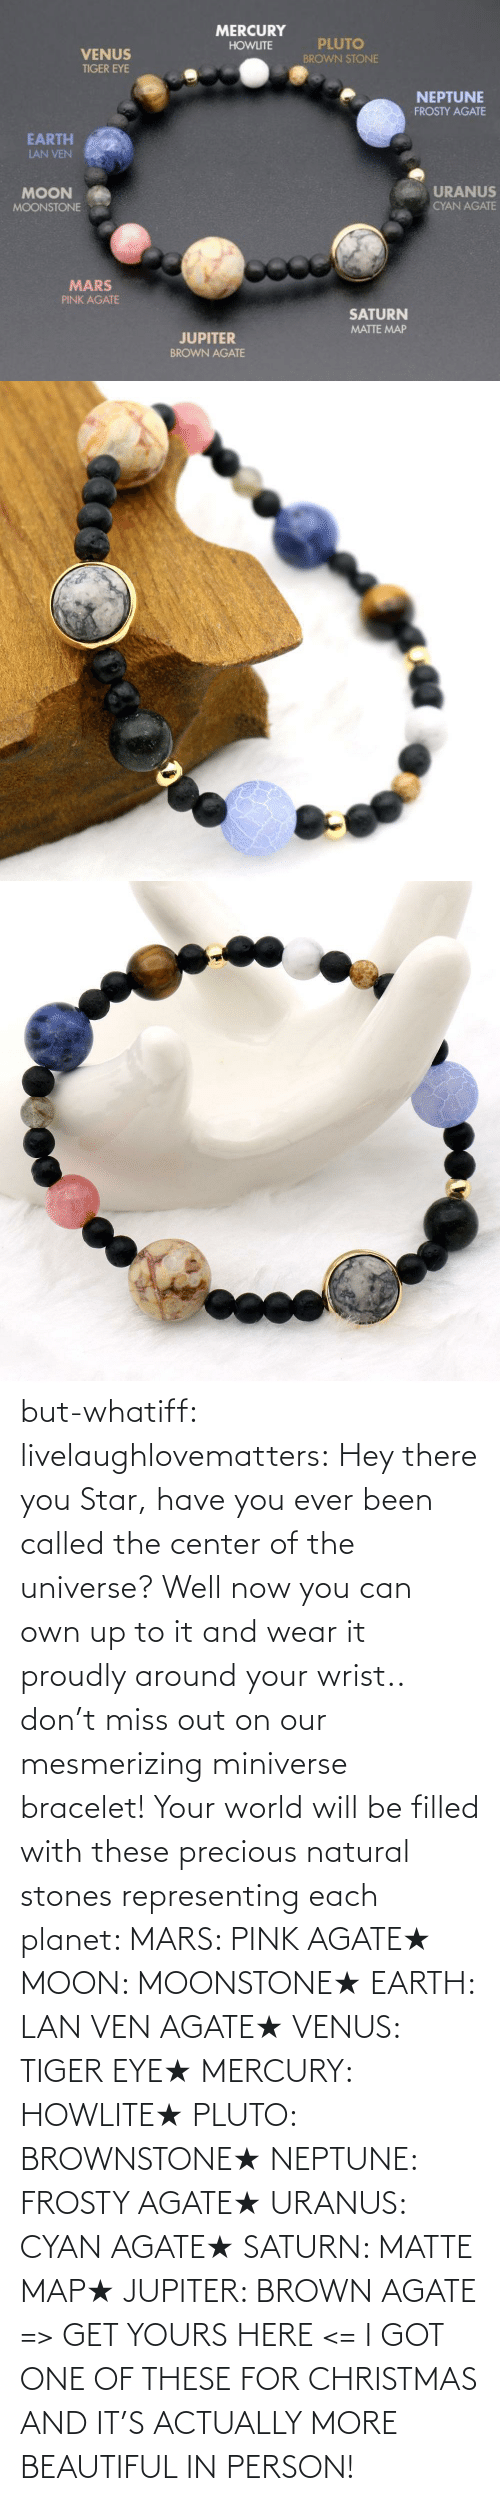 stones: but-whatiff:  livelaughlovematters:  Hey there you Star, have you ever been called the center of the universe? Well now you can own up to it and wear it proudly around your wrist.. don't miss out on our mesmerizing miniverse bracelet! Your world will be filled with these precious natural stones representing each planet:  MARS: PINK AGATE★ MOON: MOONSTONE★ EARTH: LAN VEN AGATE★ VENUS: TIGER EYE★ MERCURY: HOWLITE★ PLUTO: BROWNSTONE★ NEPTUNE: FROSTY AGATE★ URANUS: CYAN AGATE★ SATURN: MATTE MAP★ JUPITER: BROWN AGATE => GET YOURS HERE <=  I GOT ONE OF THESE FOR CHRISTMAS AND IT'S ACTUALLY MORE BEAUTIFUL IN PERSON!